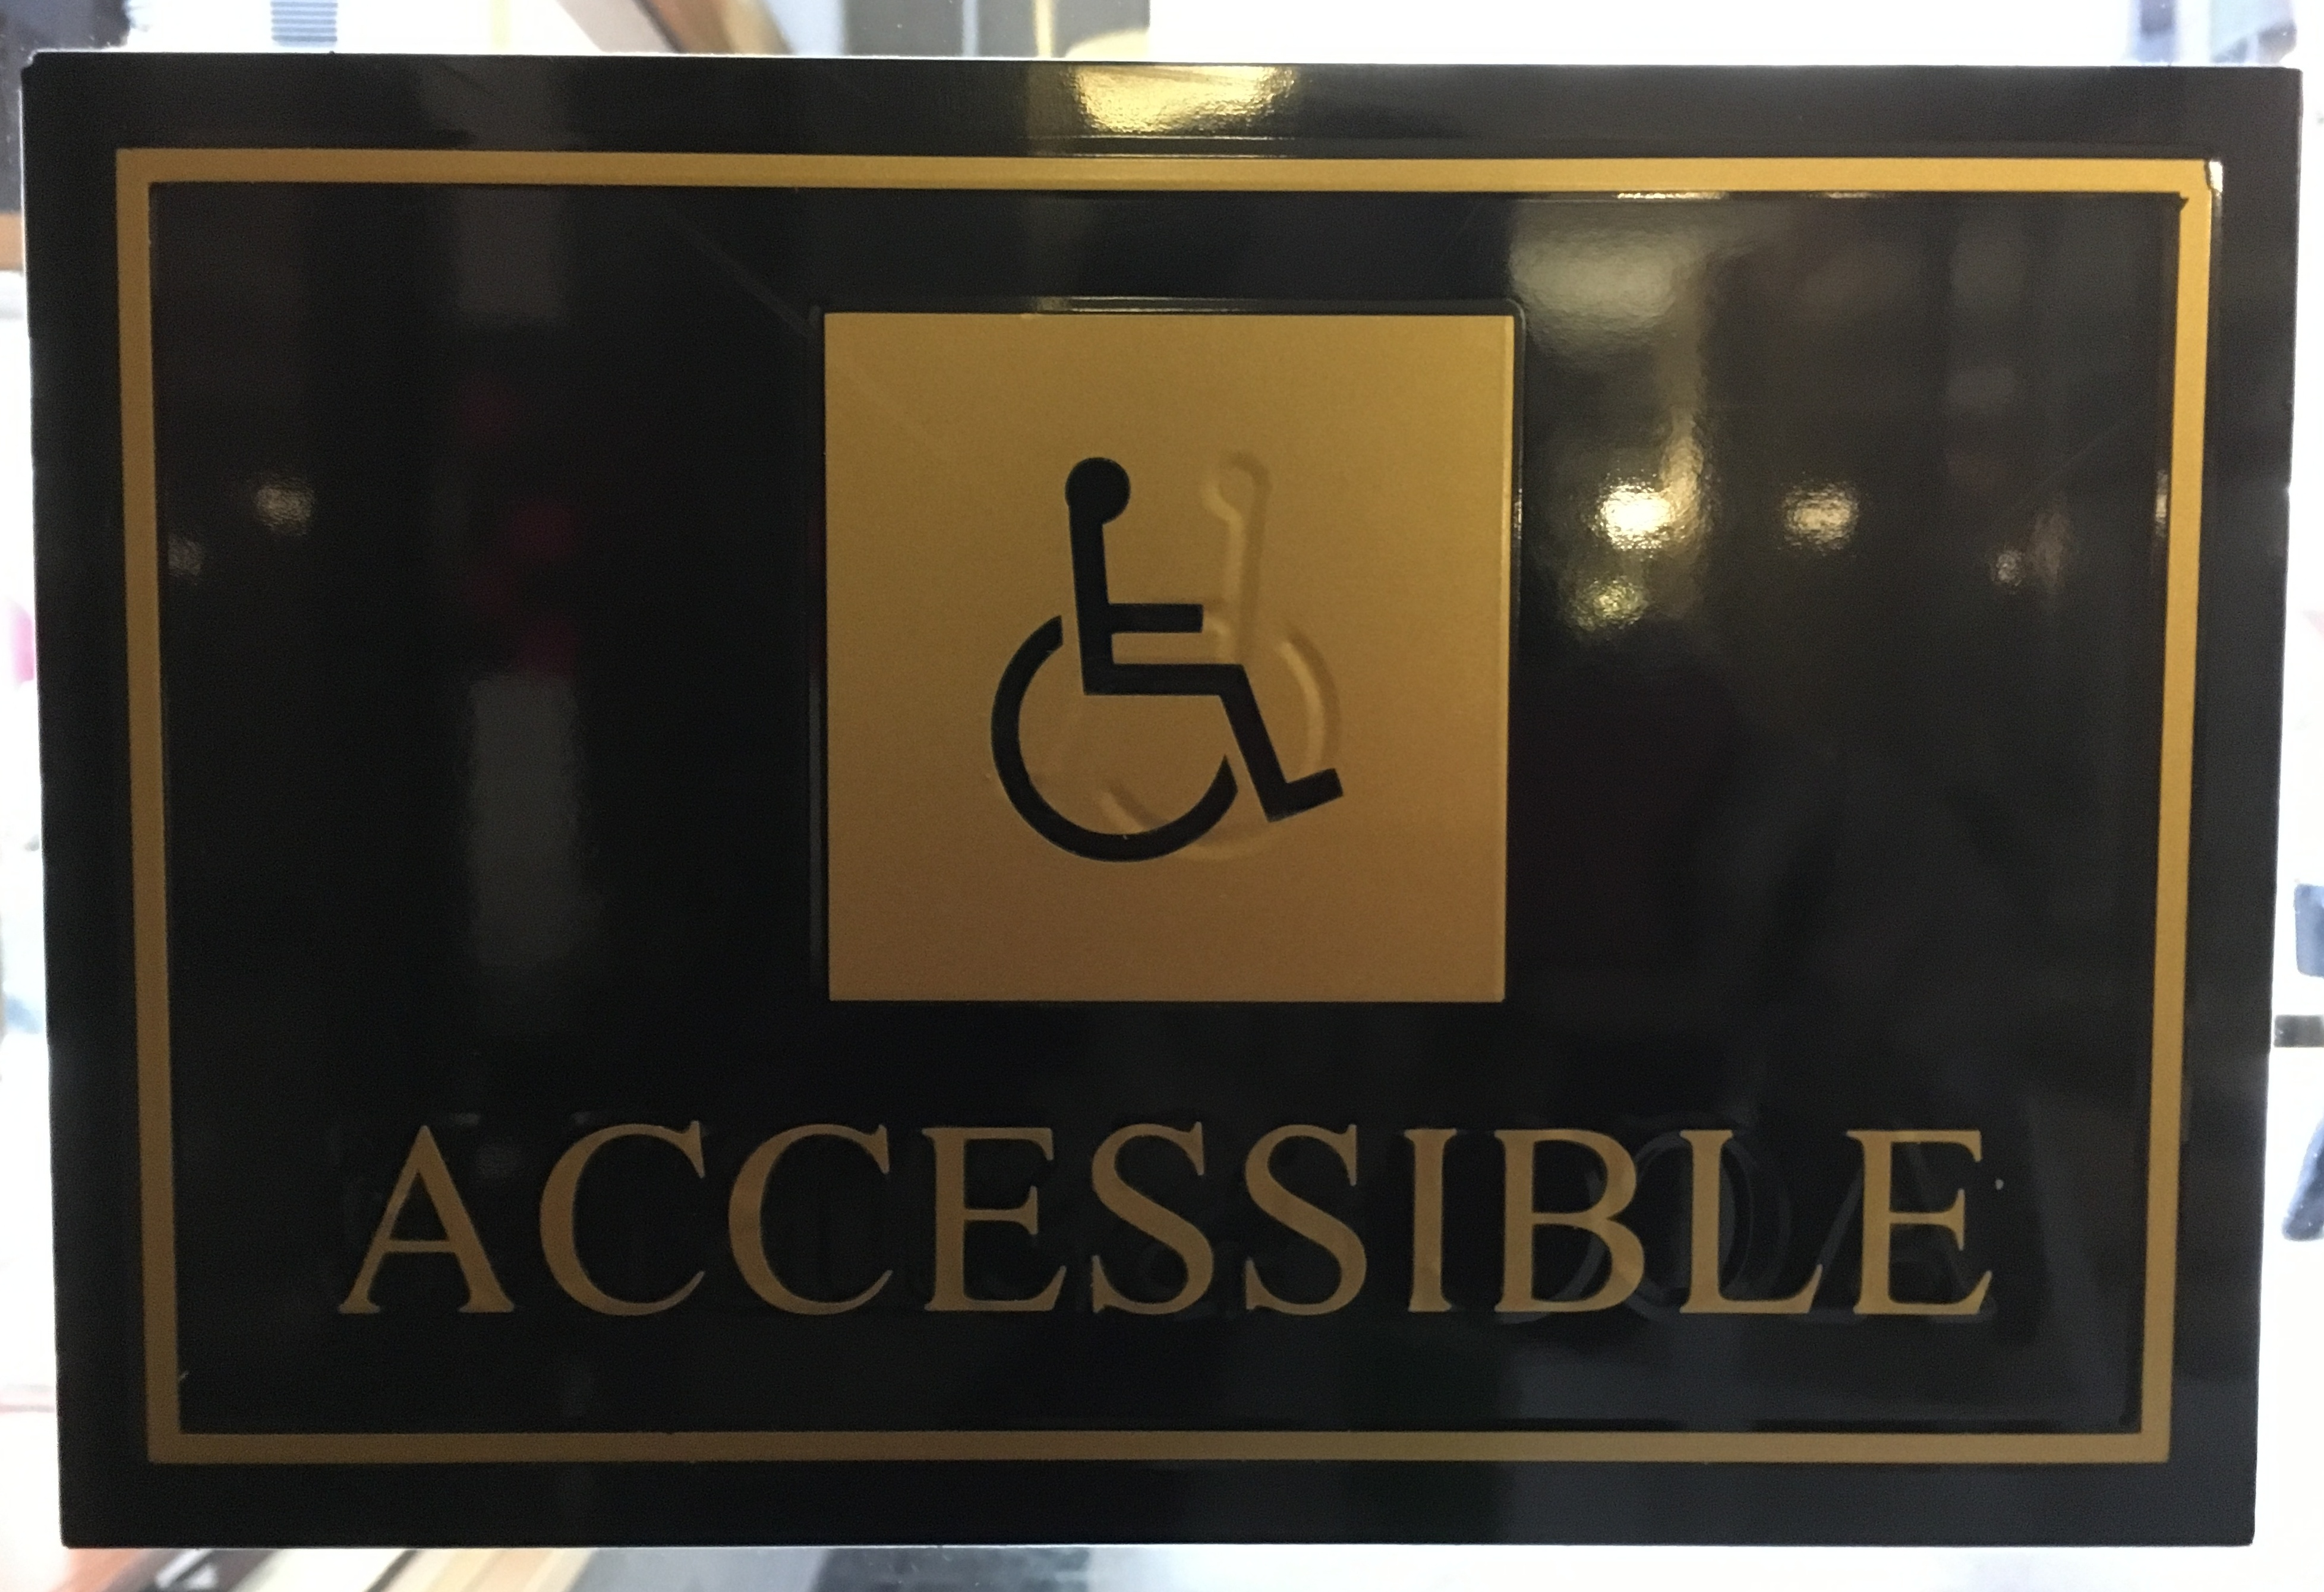 Accessible_door_sign-2.jpg